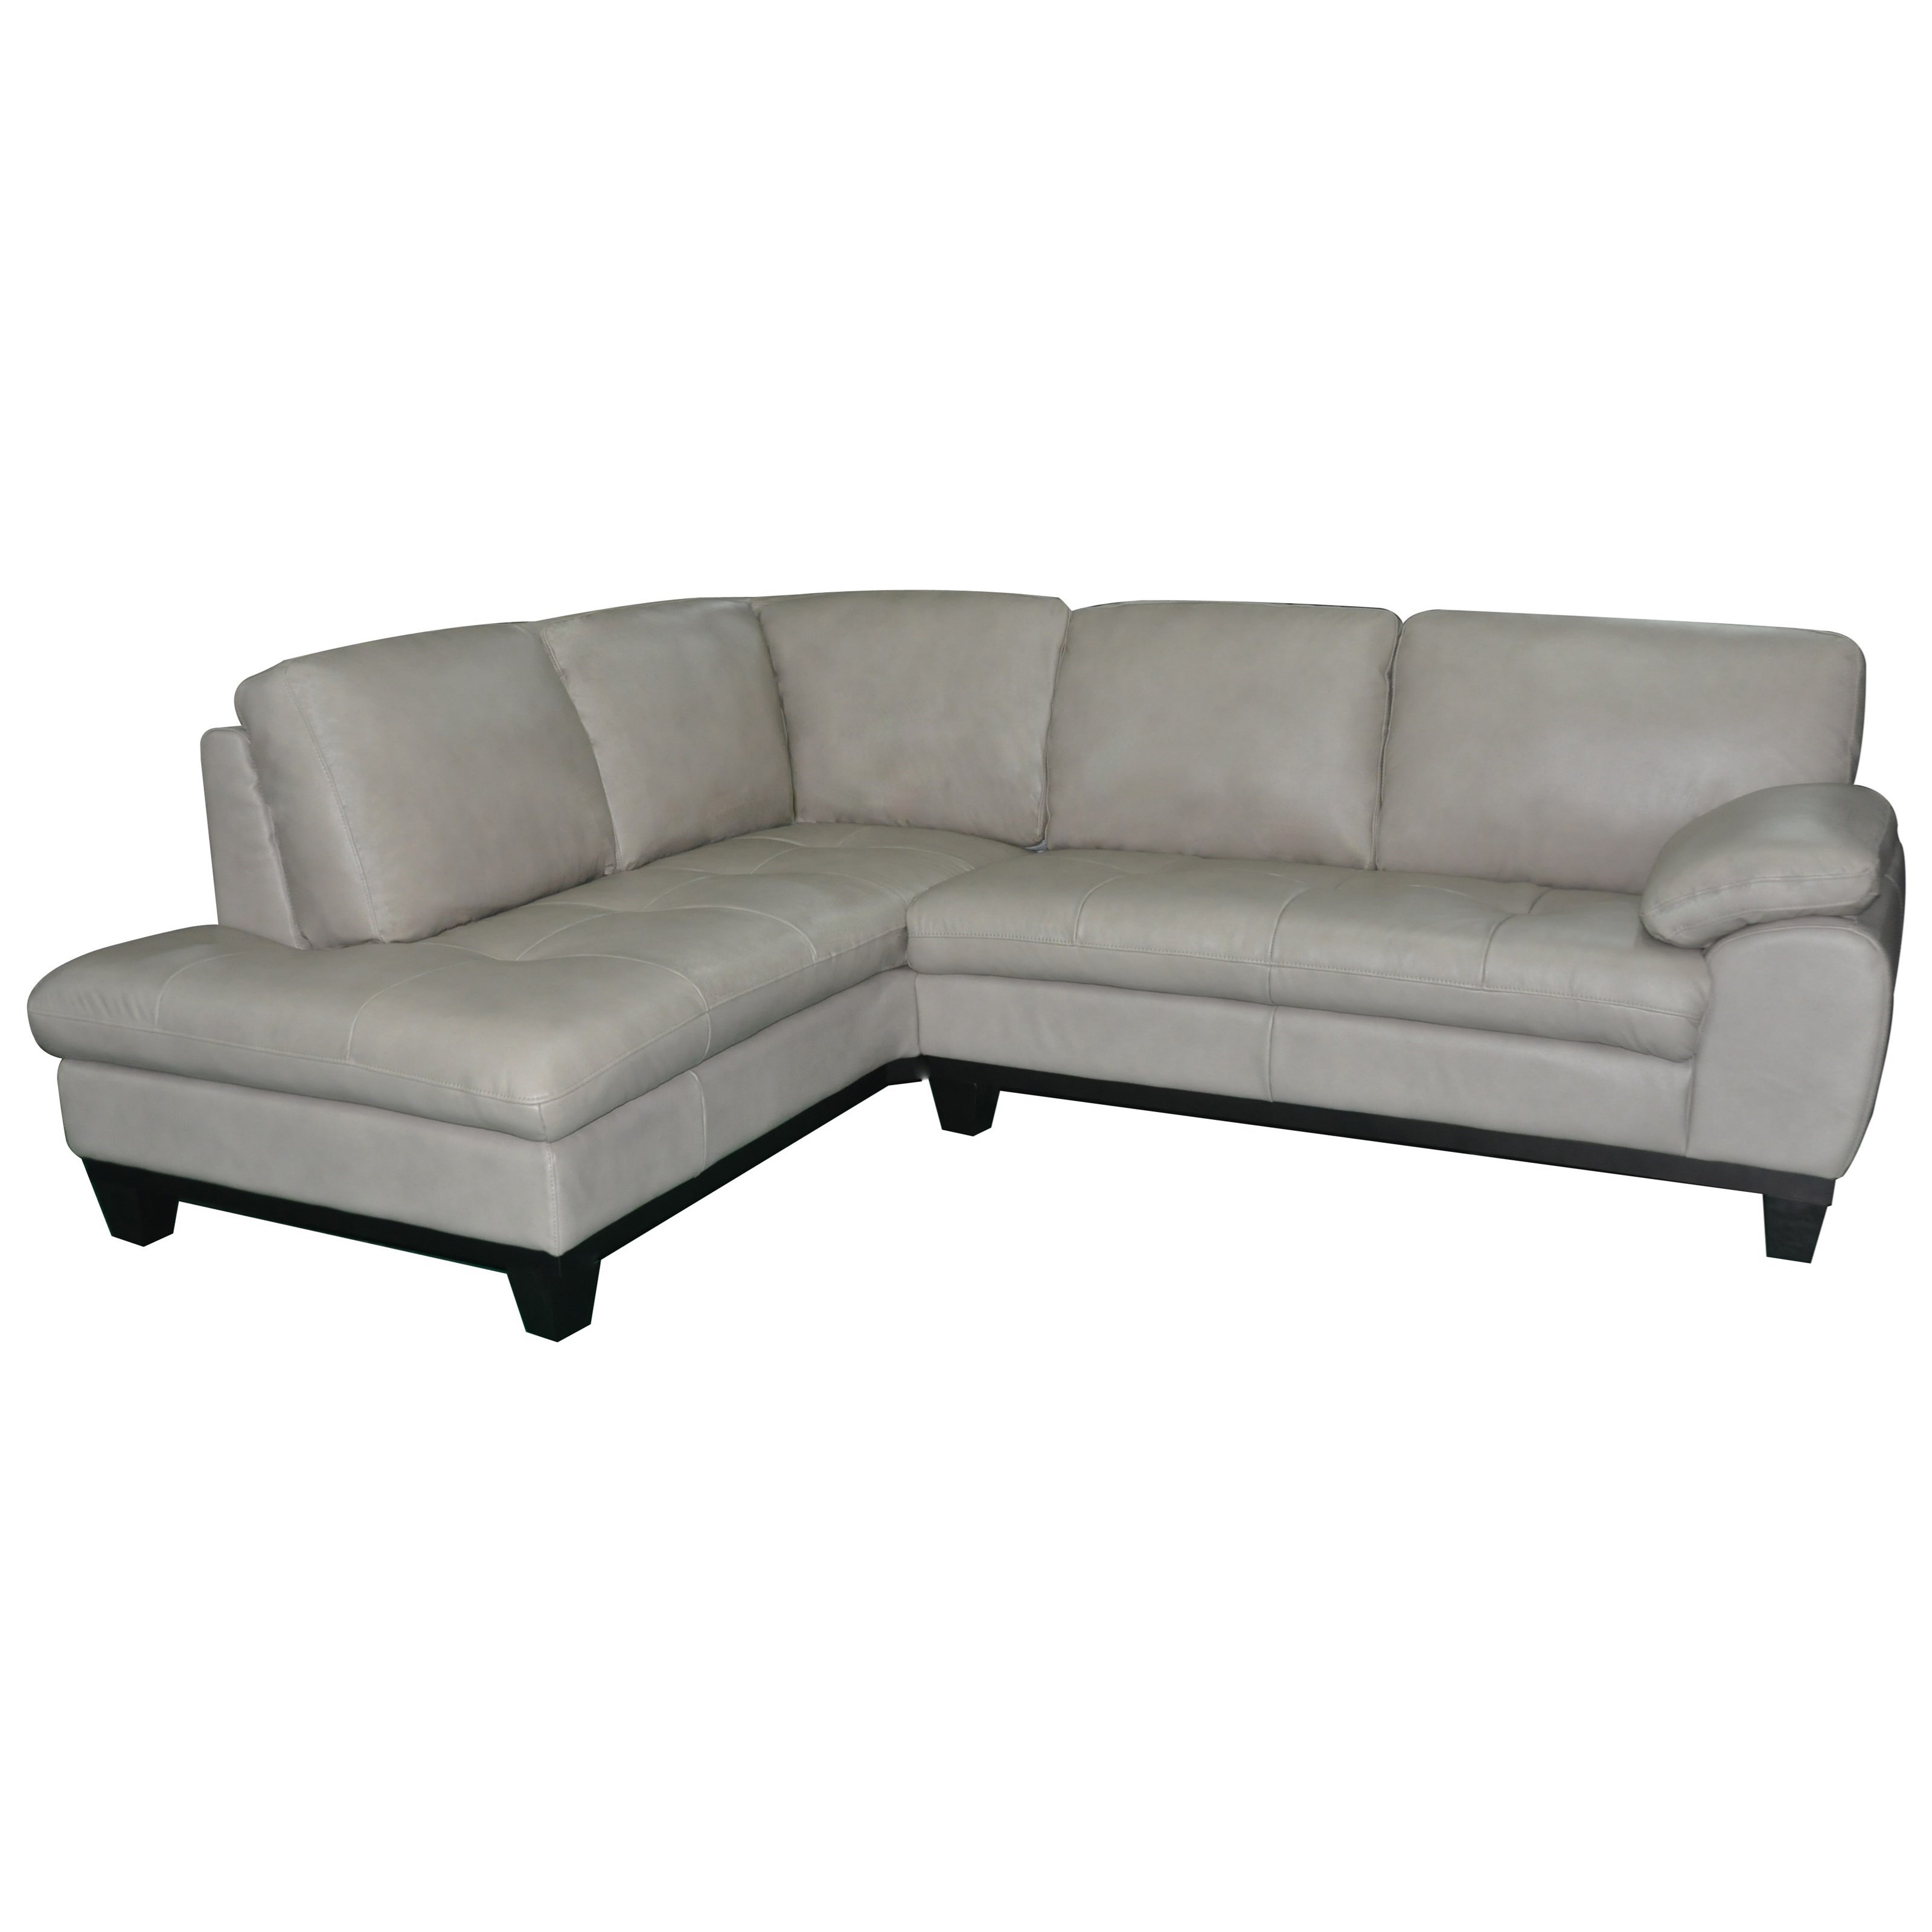 Kuka Home 1263 Two Piece Sectional Sofa With LAF Chaise   Becku0027s Furniture    Sectional Sofas